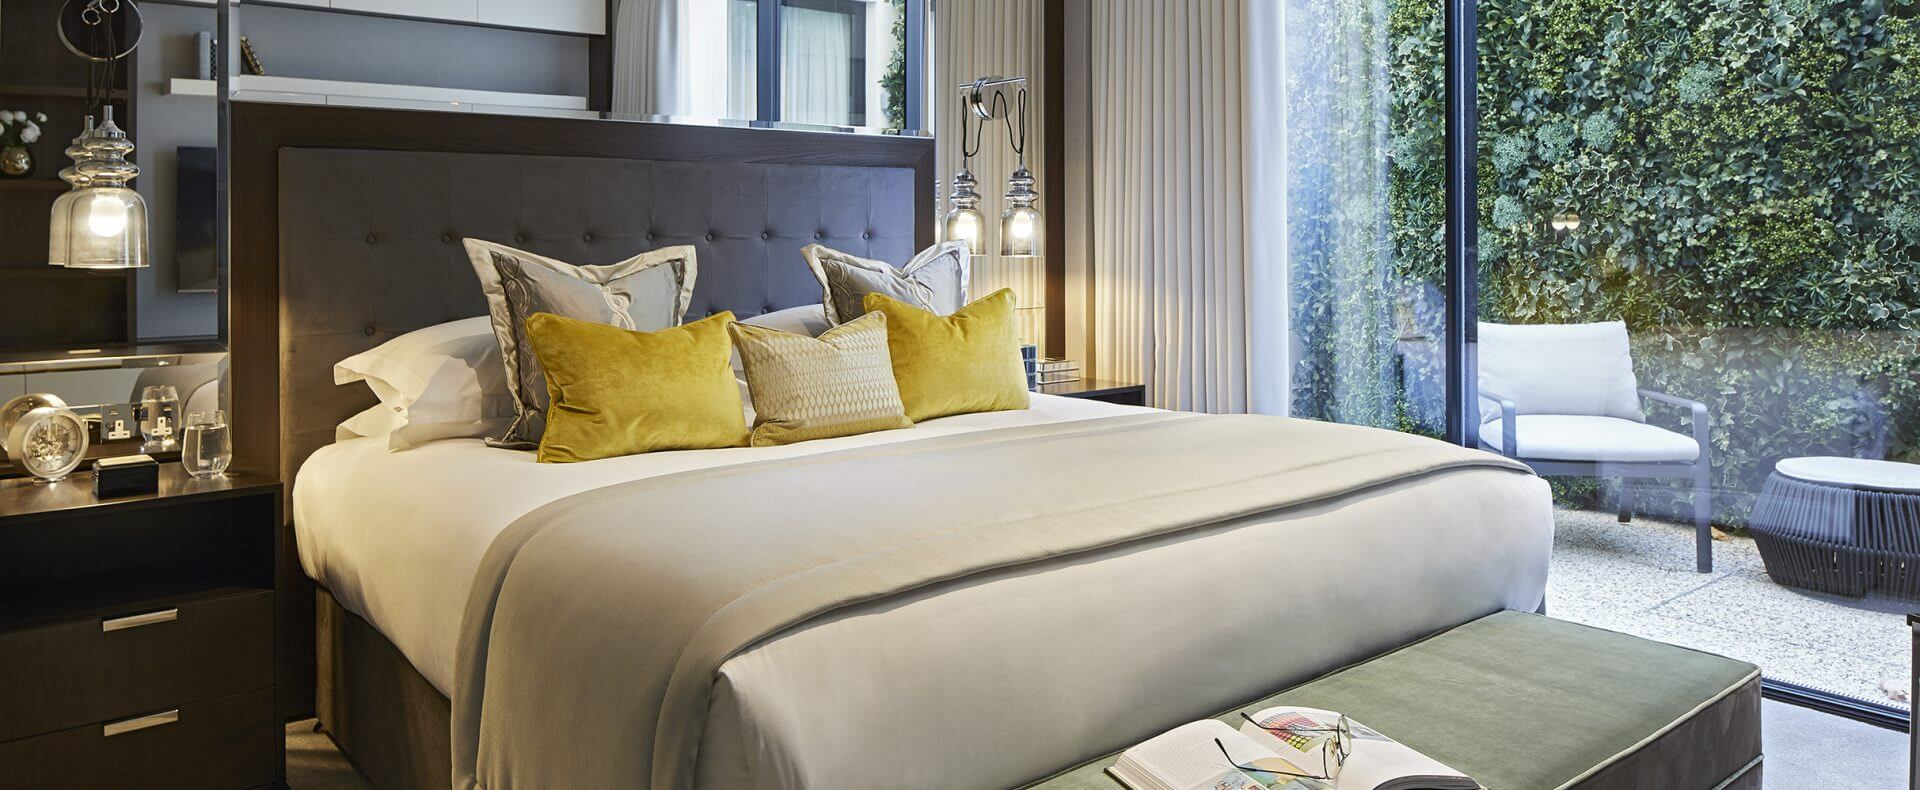 cheval hyde park gate luxury serviced apartments london